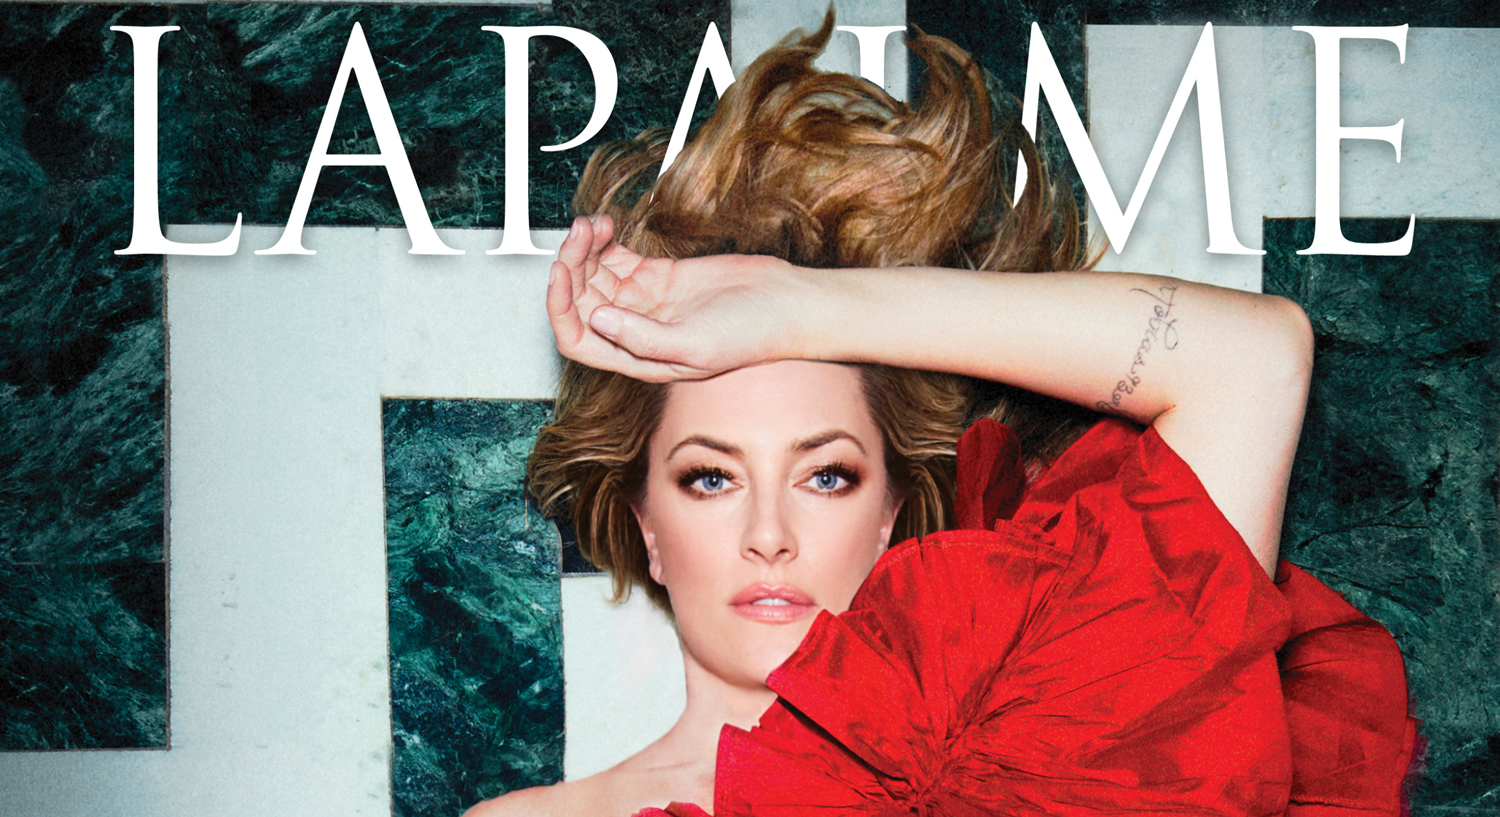 M dchen amick expects people to mispronounce her name for Kinderzimmerlampe madchen